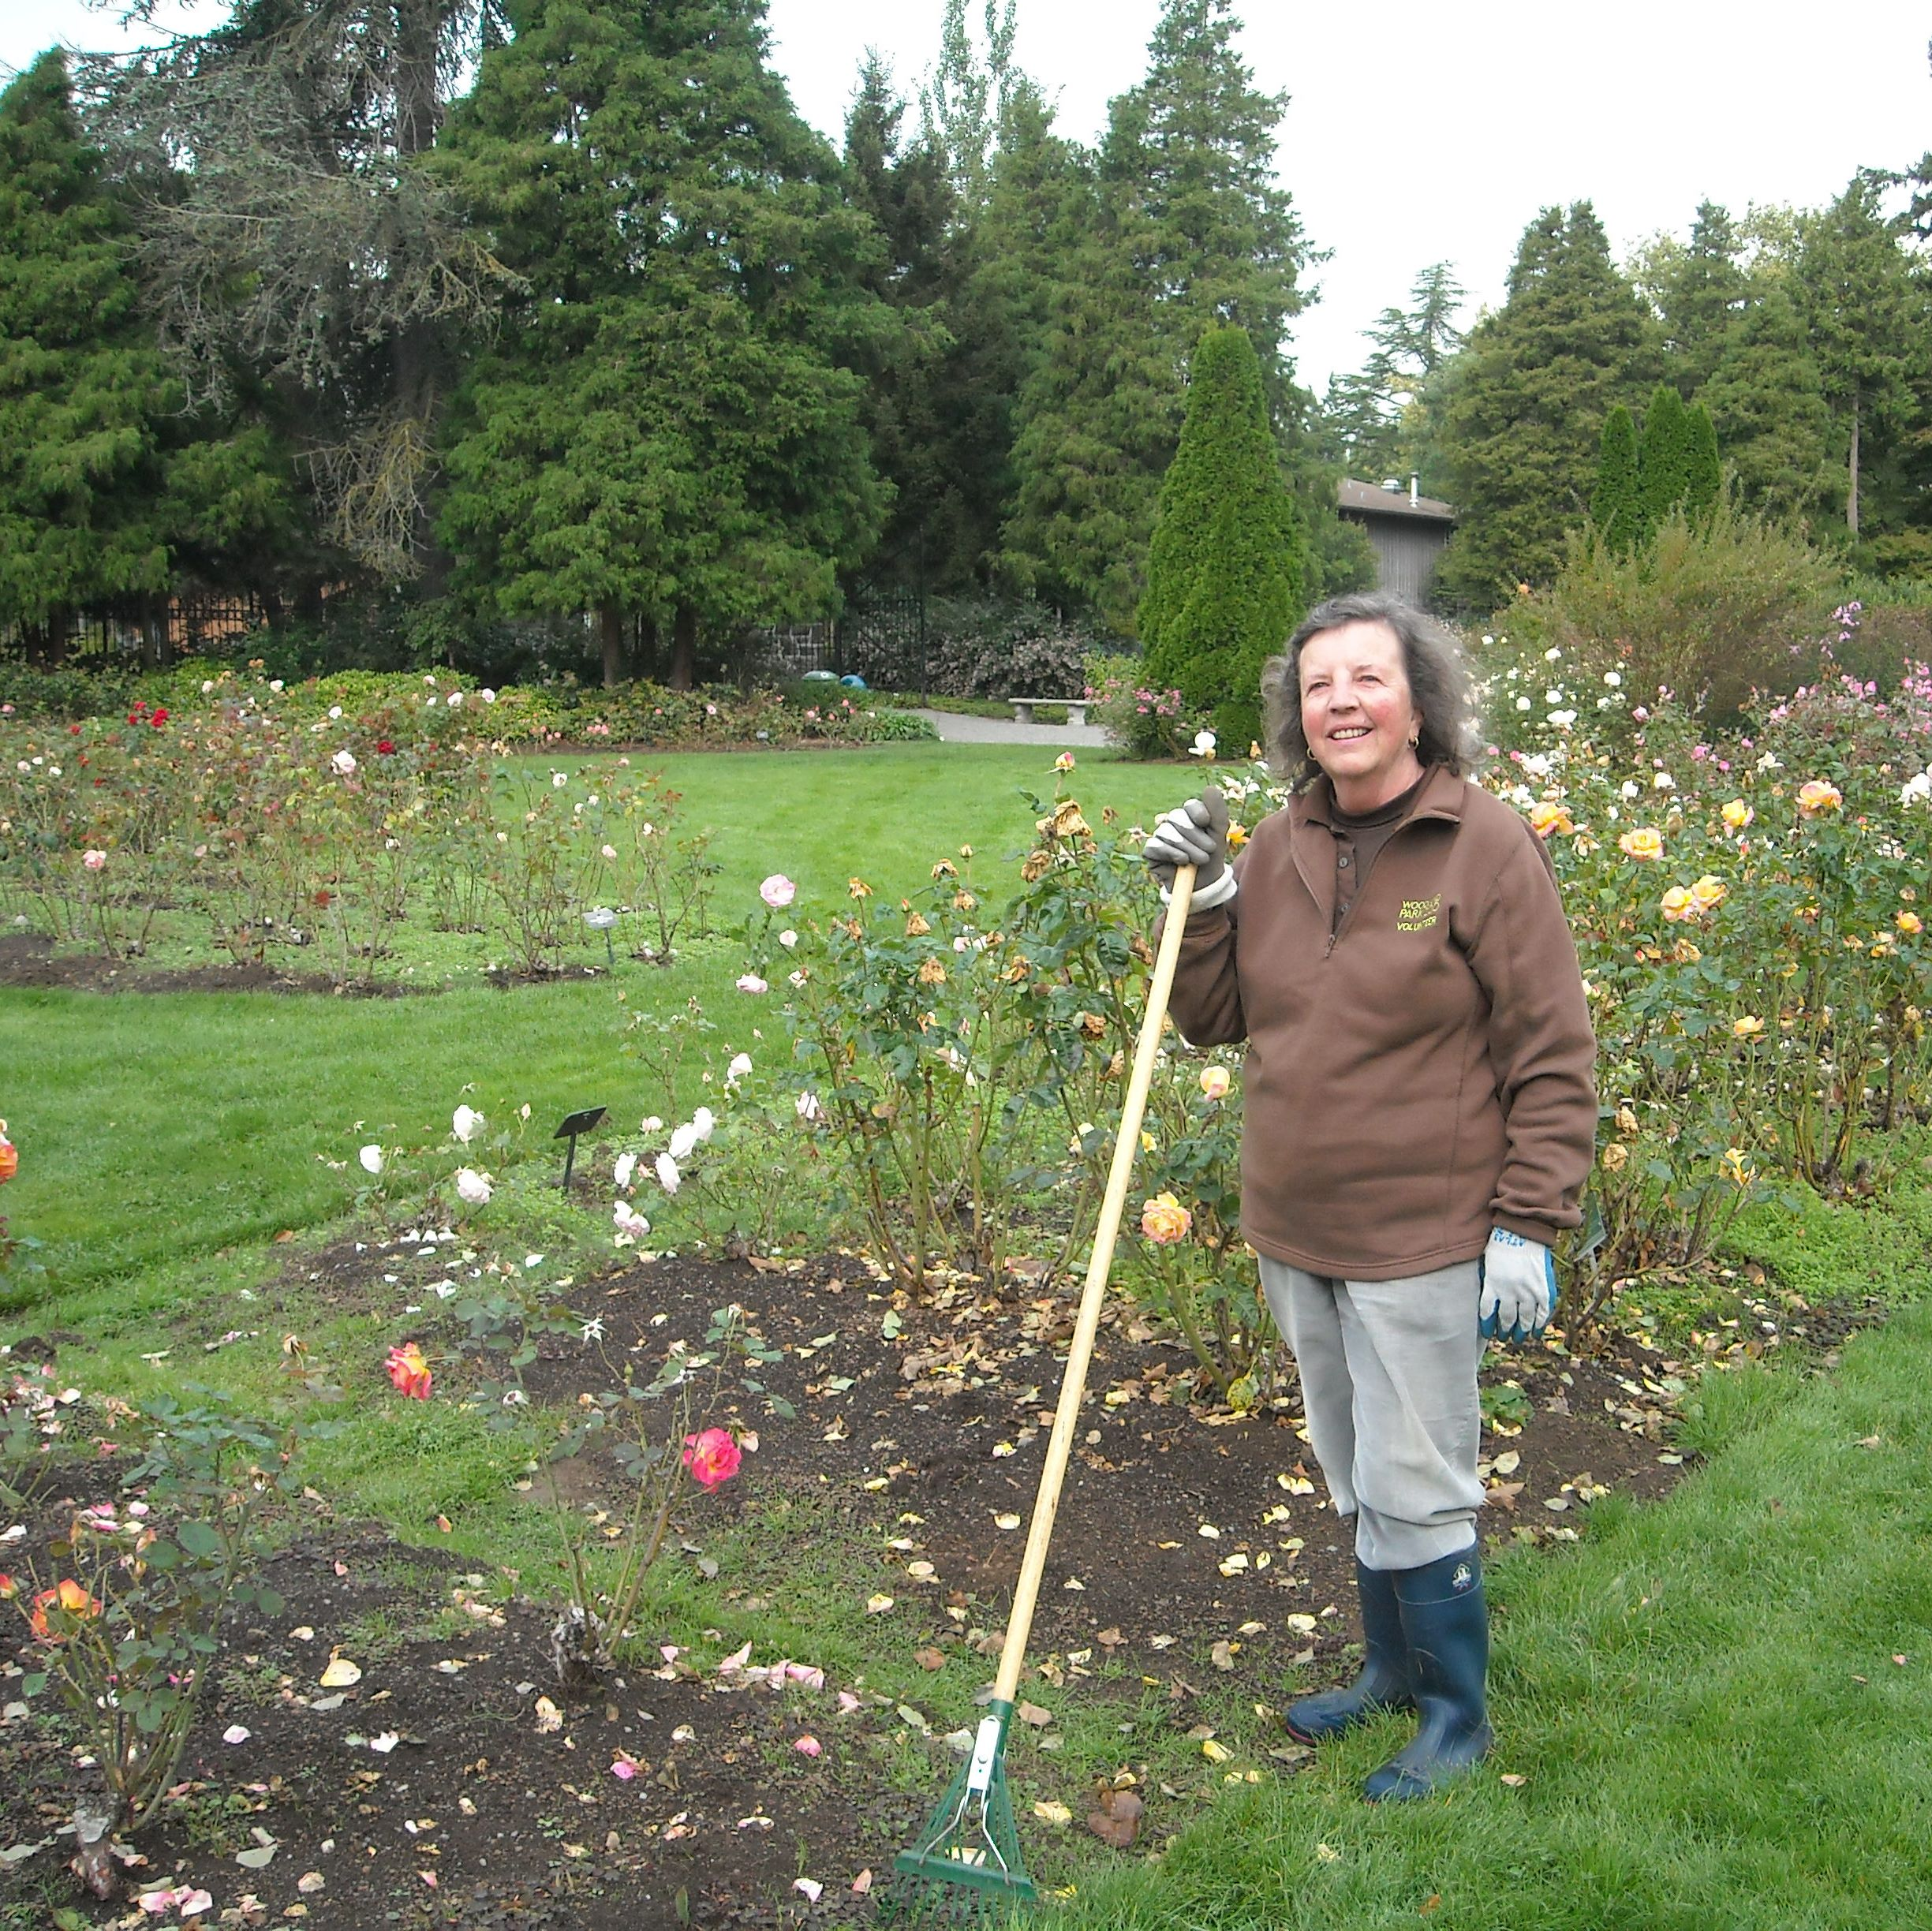 Volunteers Rose Garden